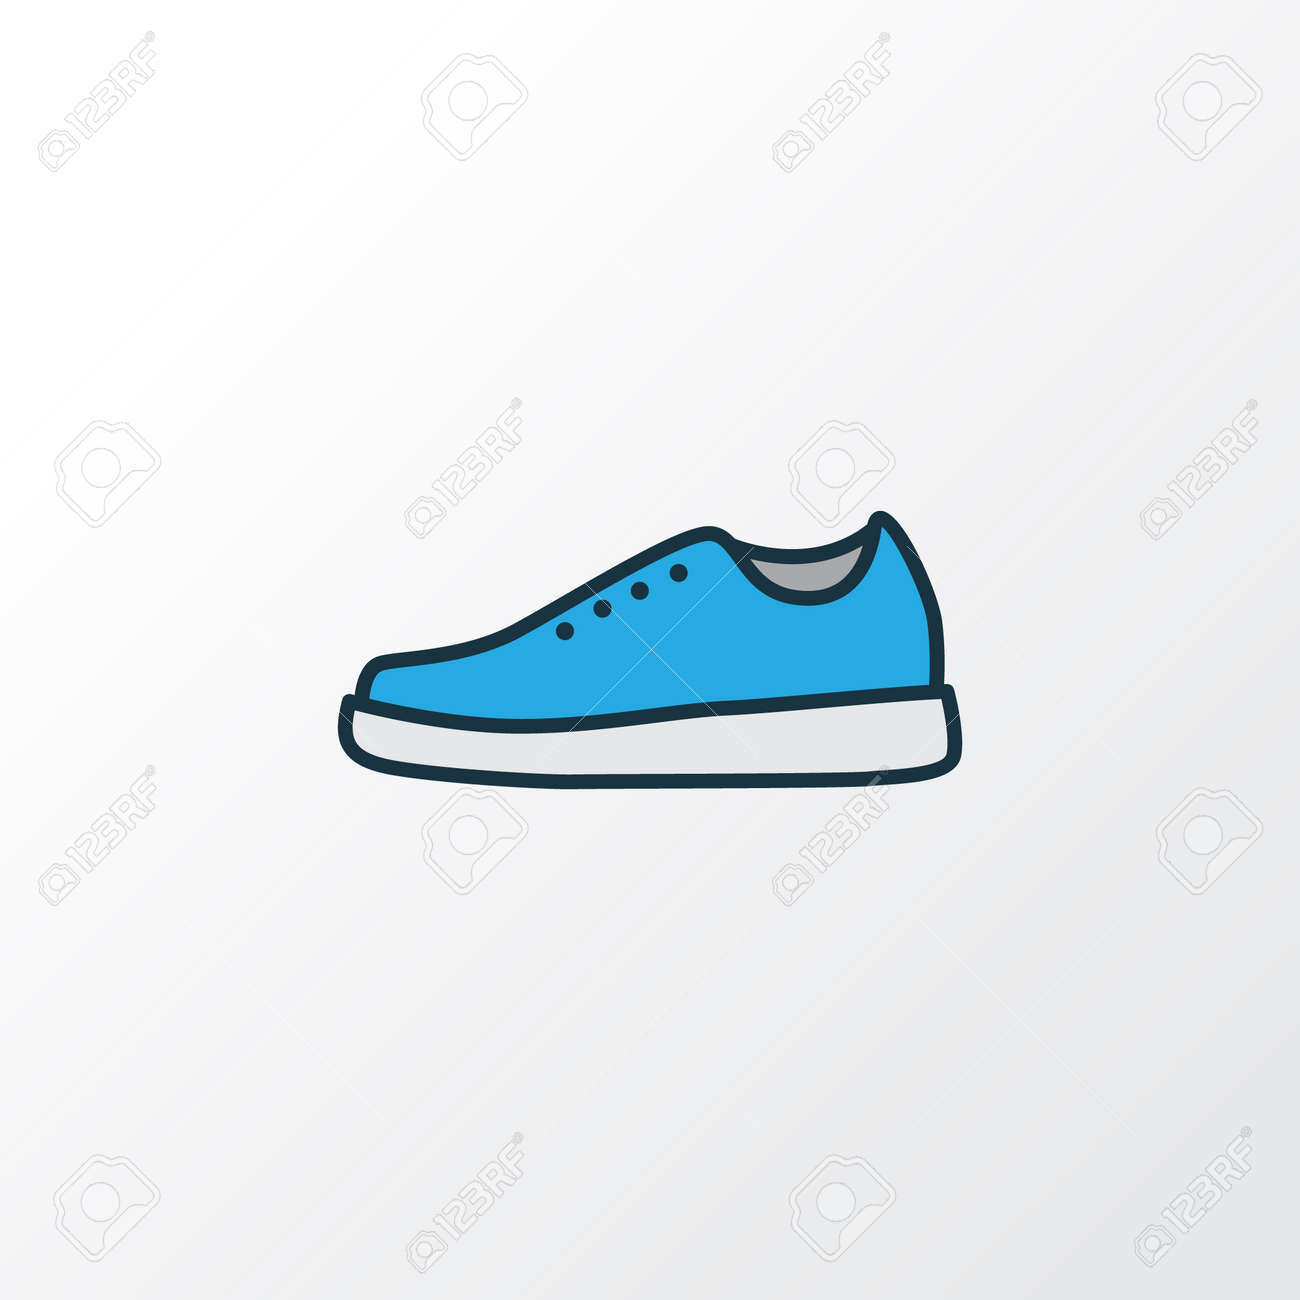 Gumshoes Colorful Outline Symbol Premium Quality Isolated Sneakers